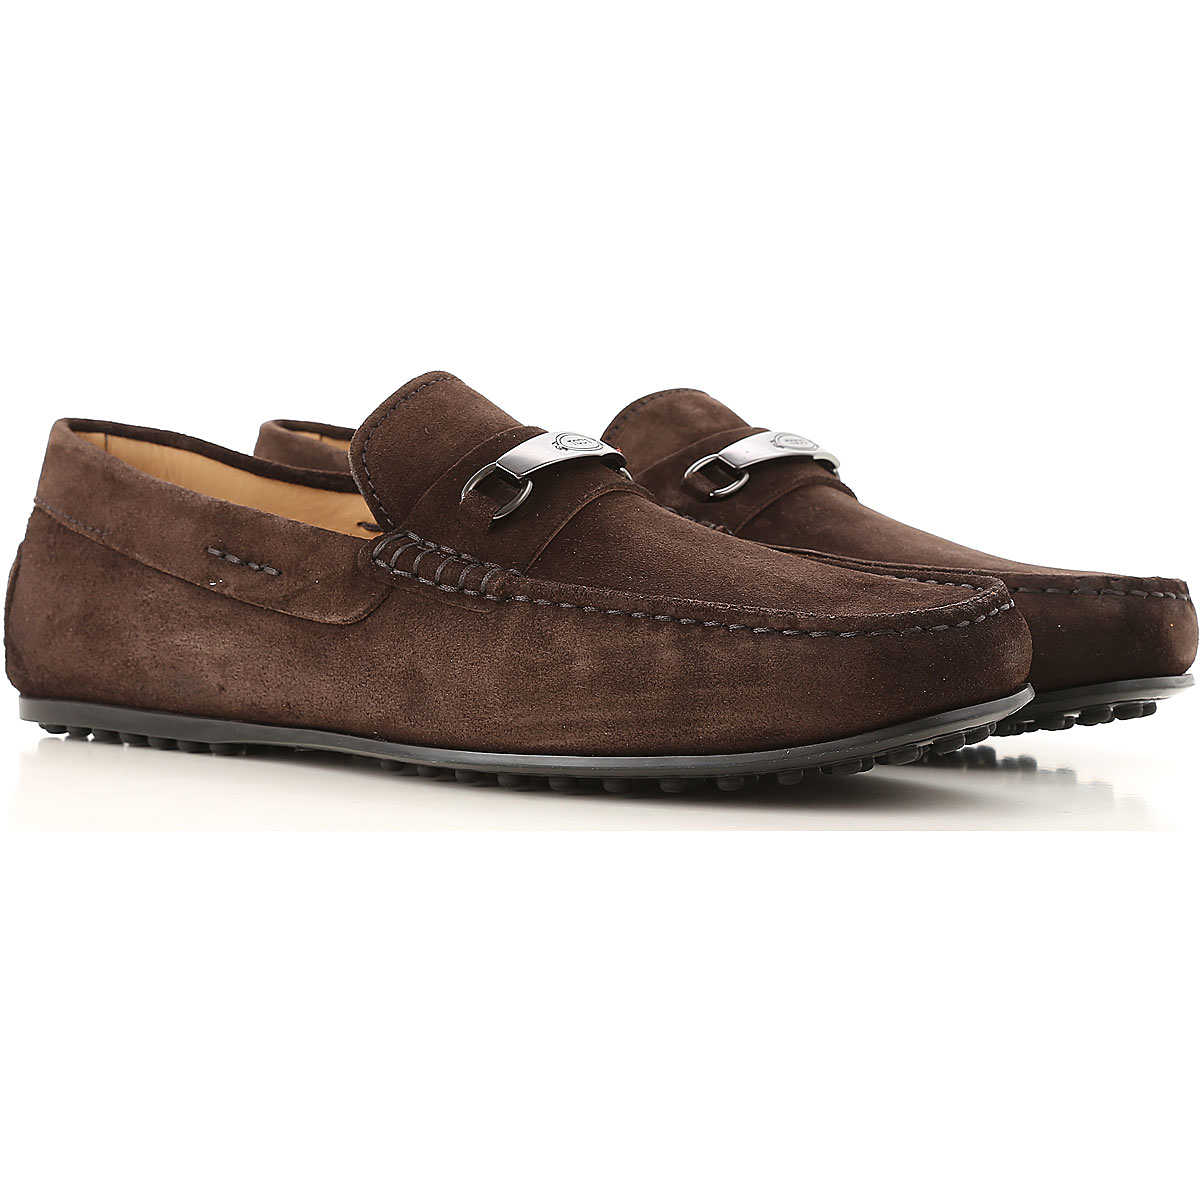 Tods Loafers for Men On Sale Dark Brown - GOOFASH